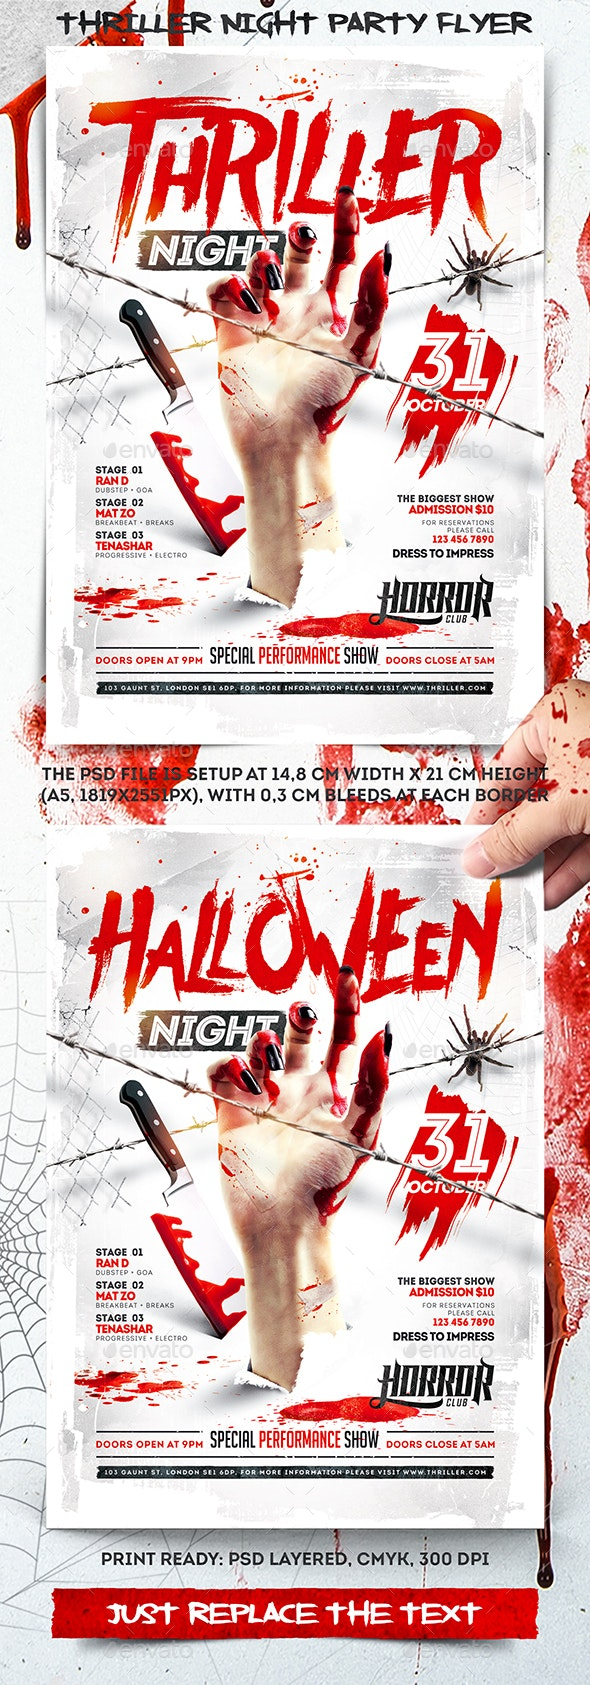 Thriller Night Party Flyer - Events Flyers